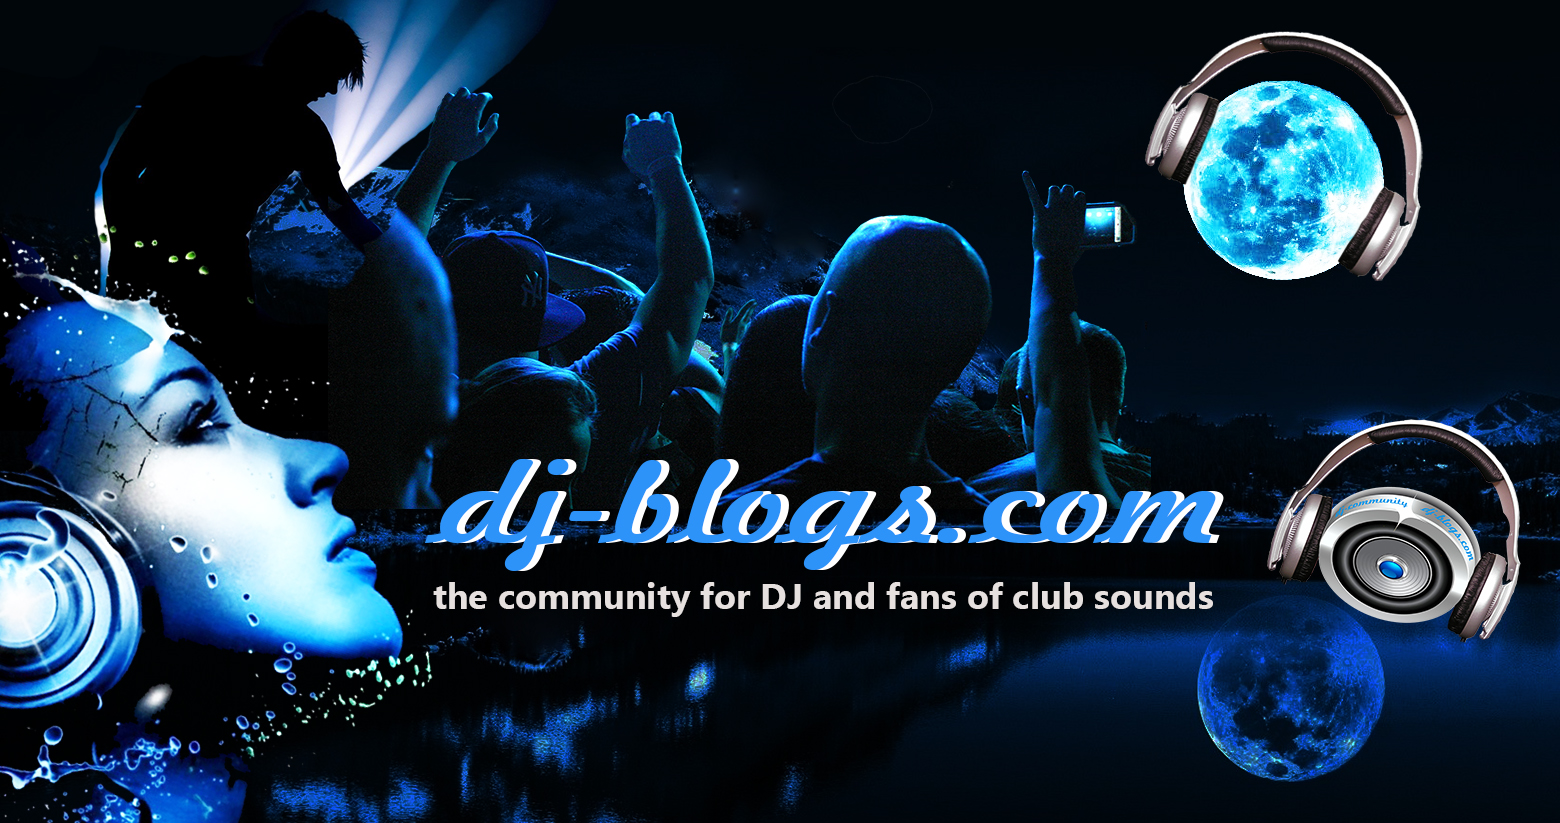 dj-blogs the dj community for all dj and fans of club sounds